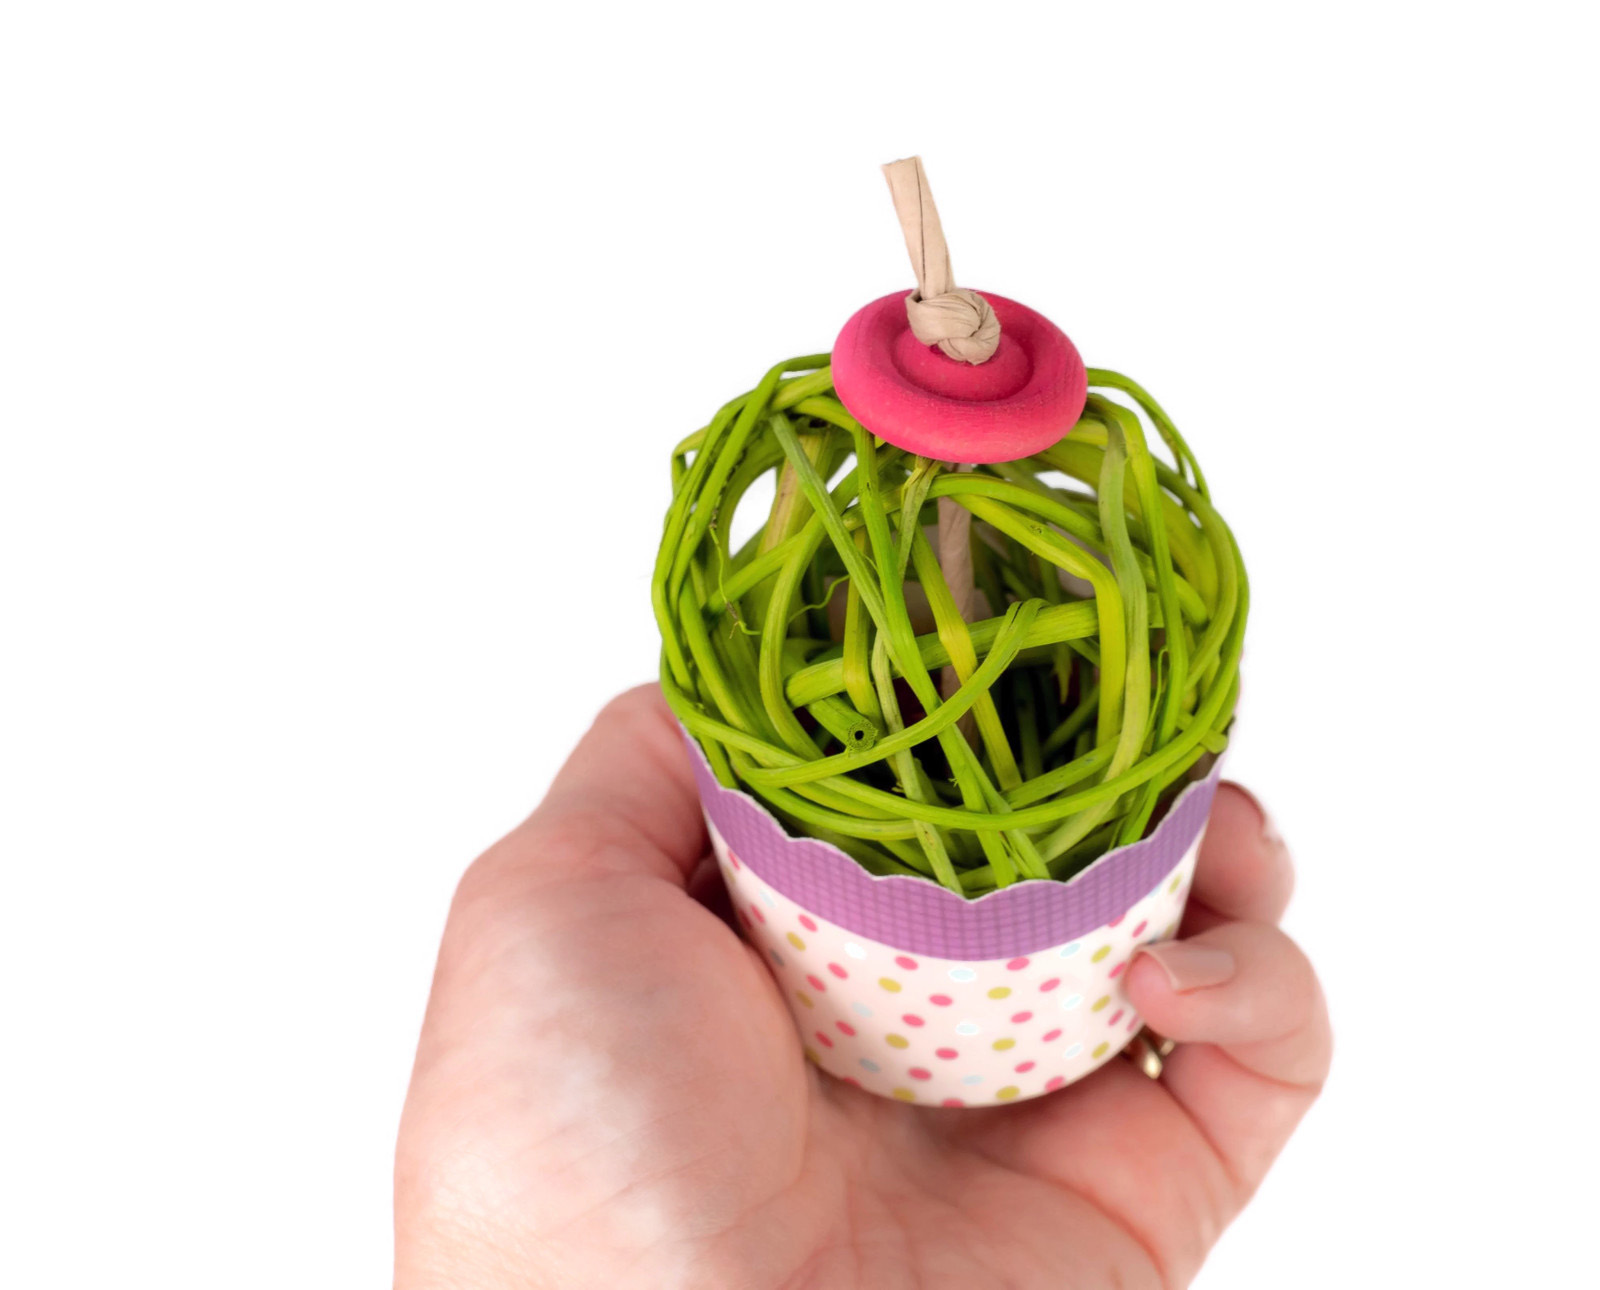 Cupcake Fun - Chew toy for Small Animals